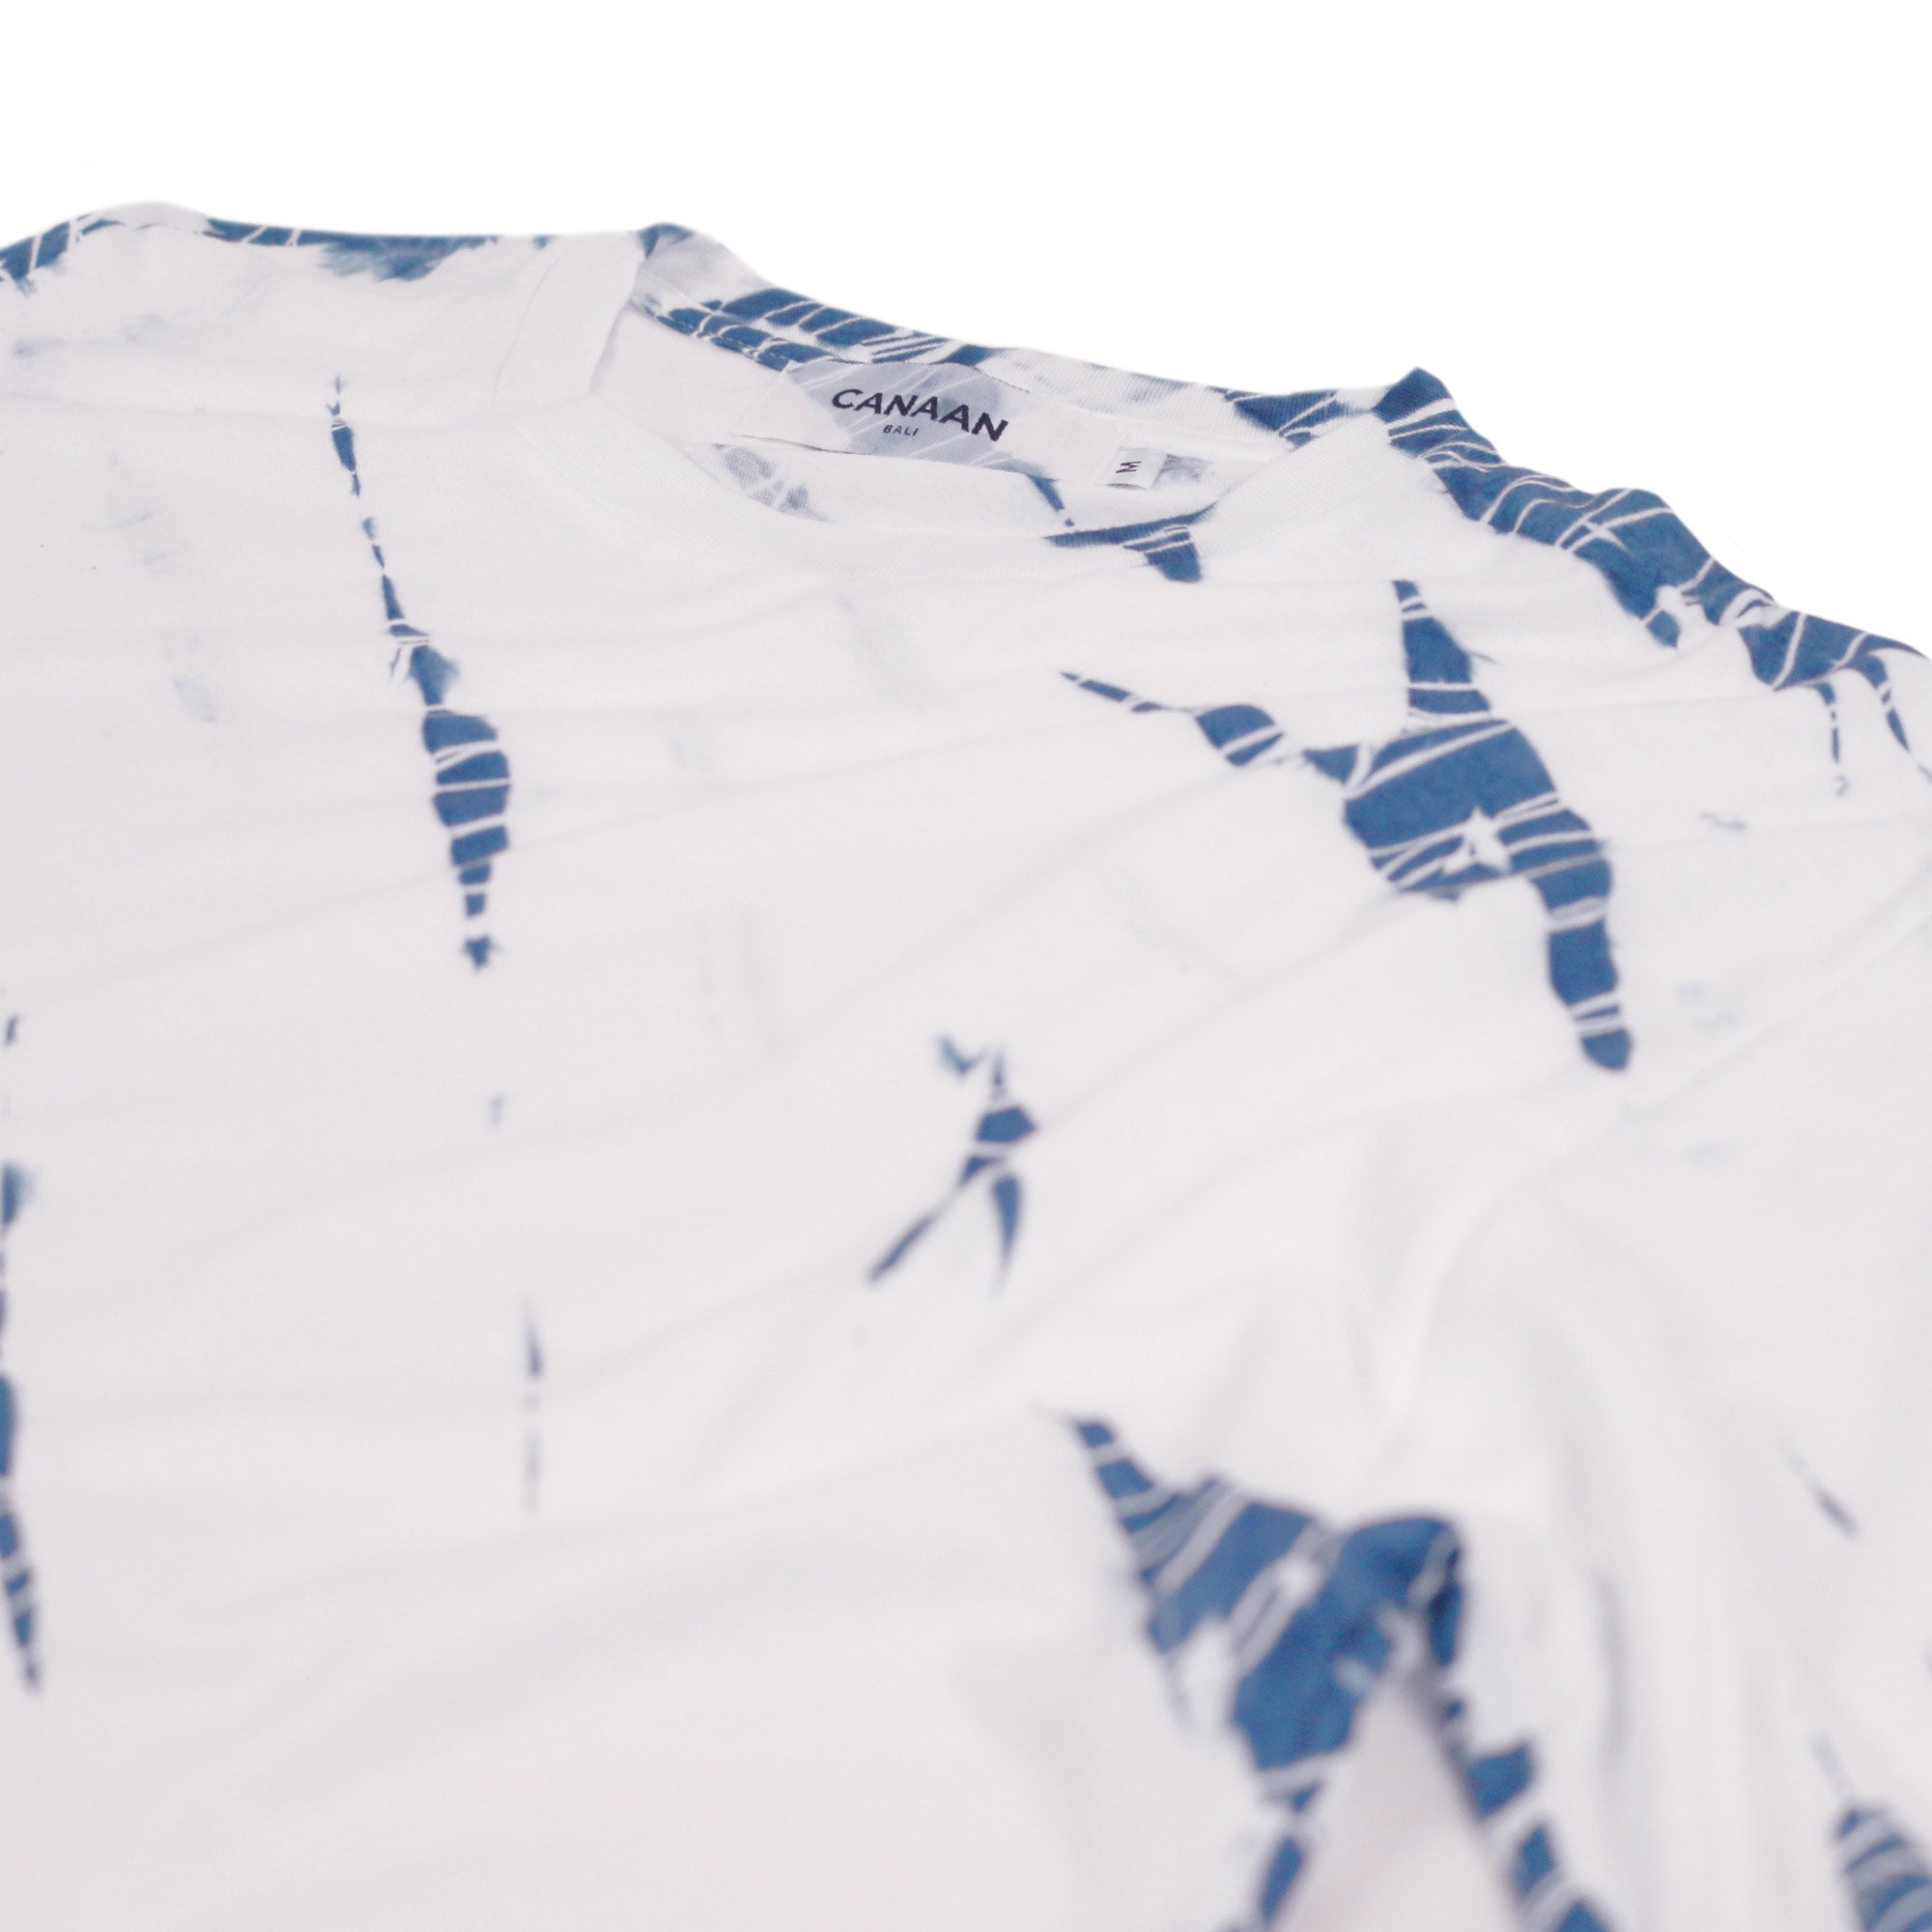 Shibori Tie Dye T-Shirt Light Indigo